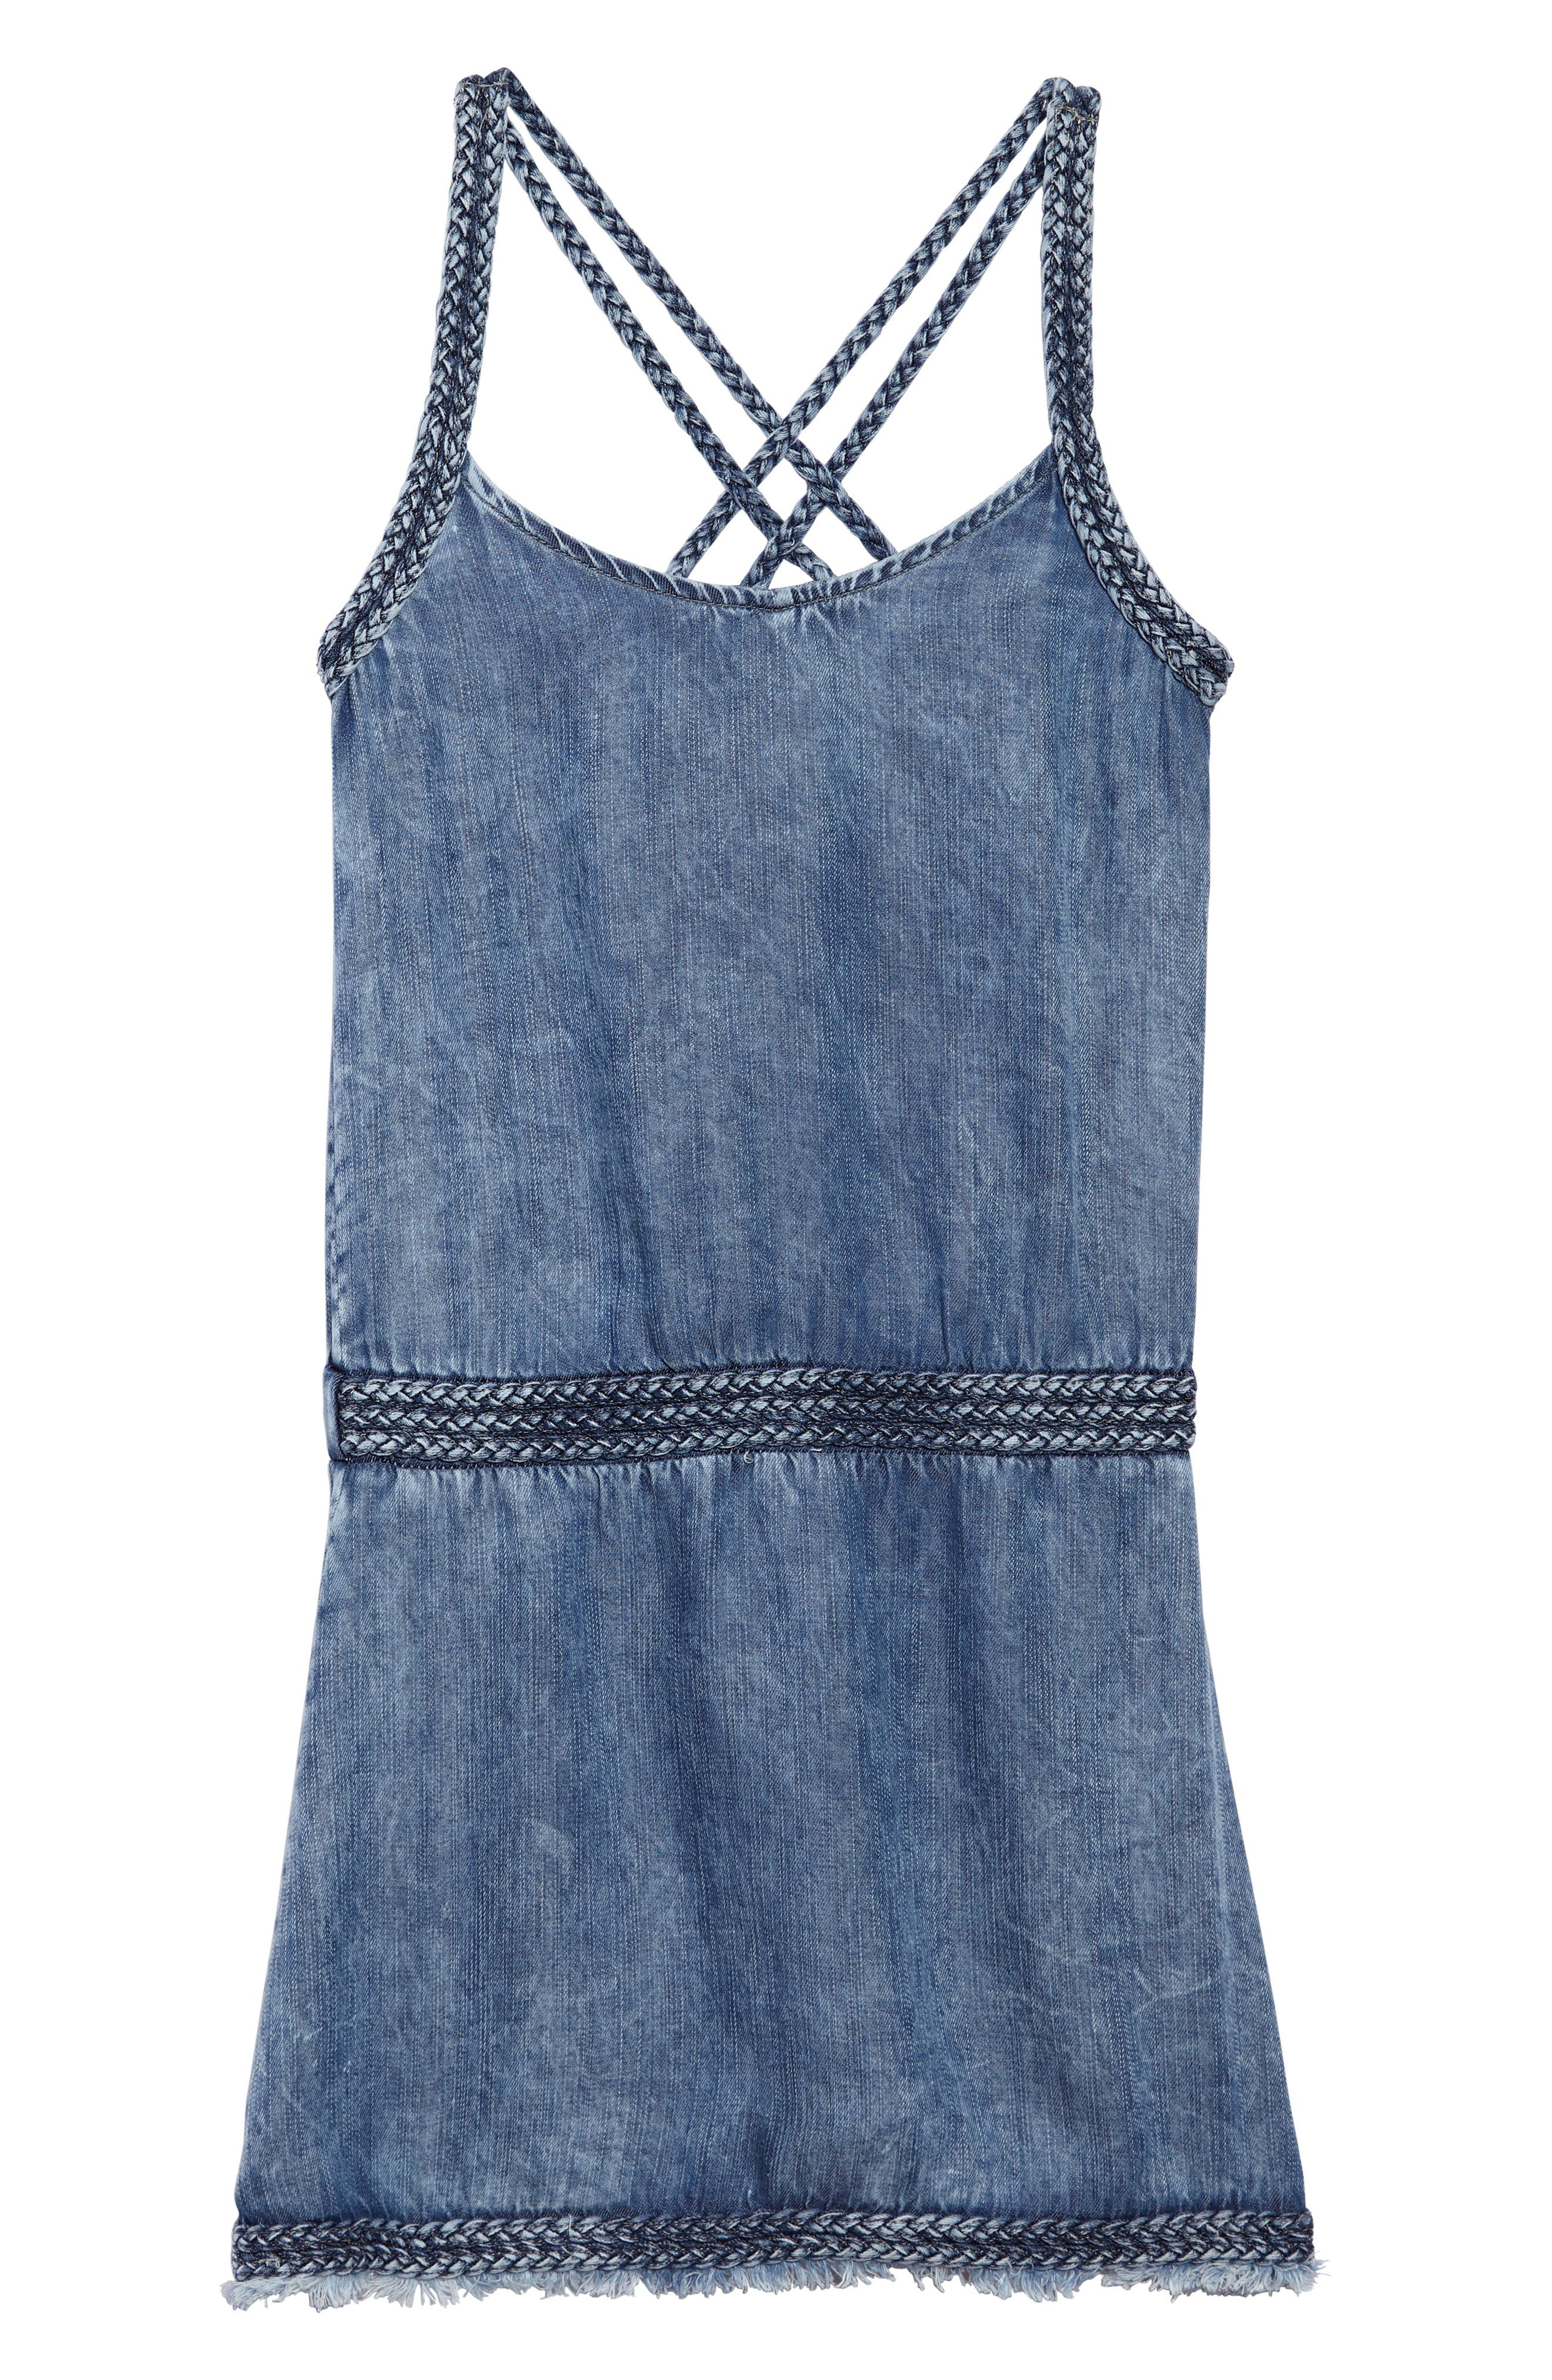 Braided Chambray Dress,                         Main,                         color, Indigo